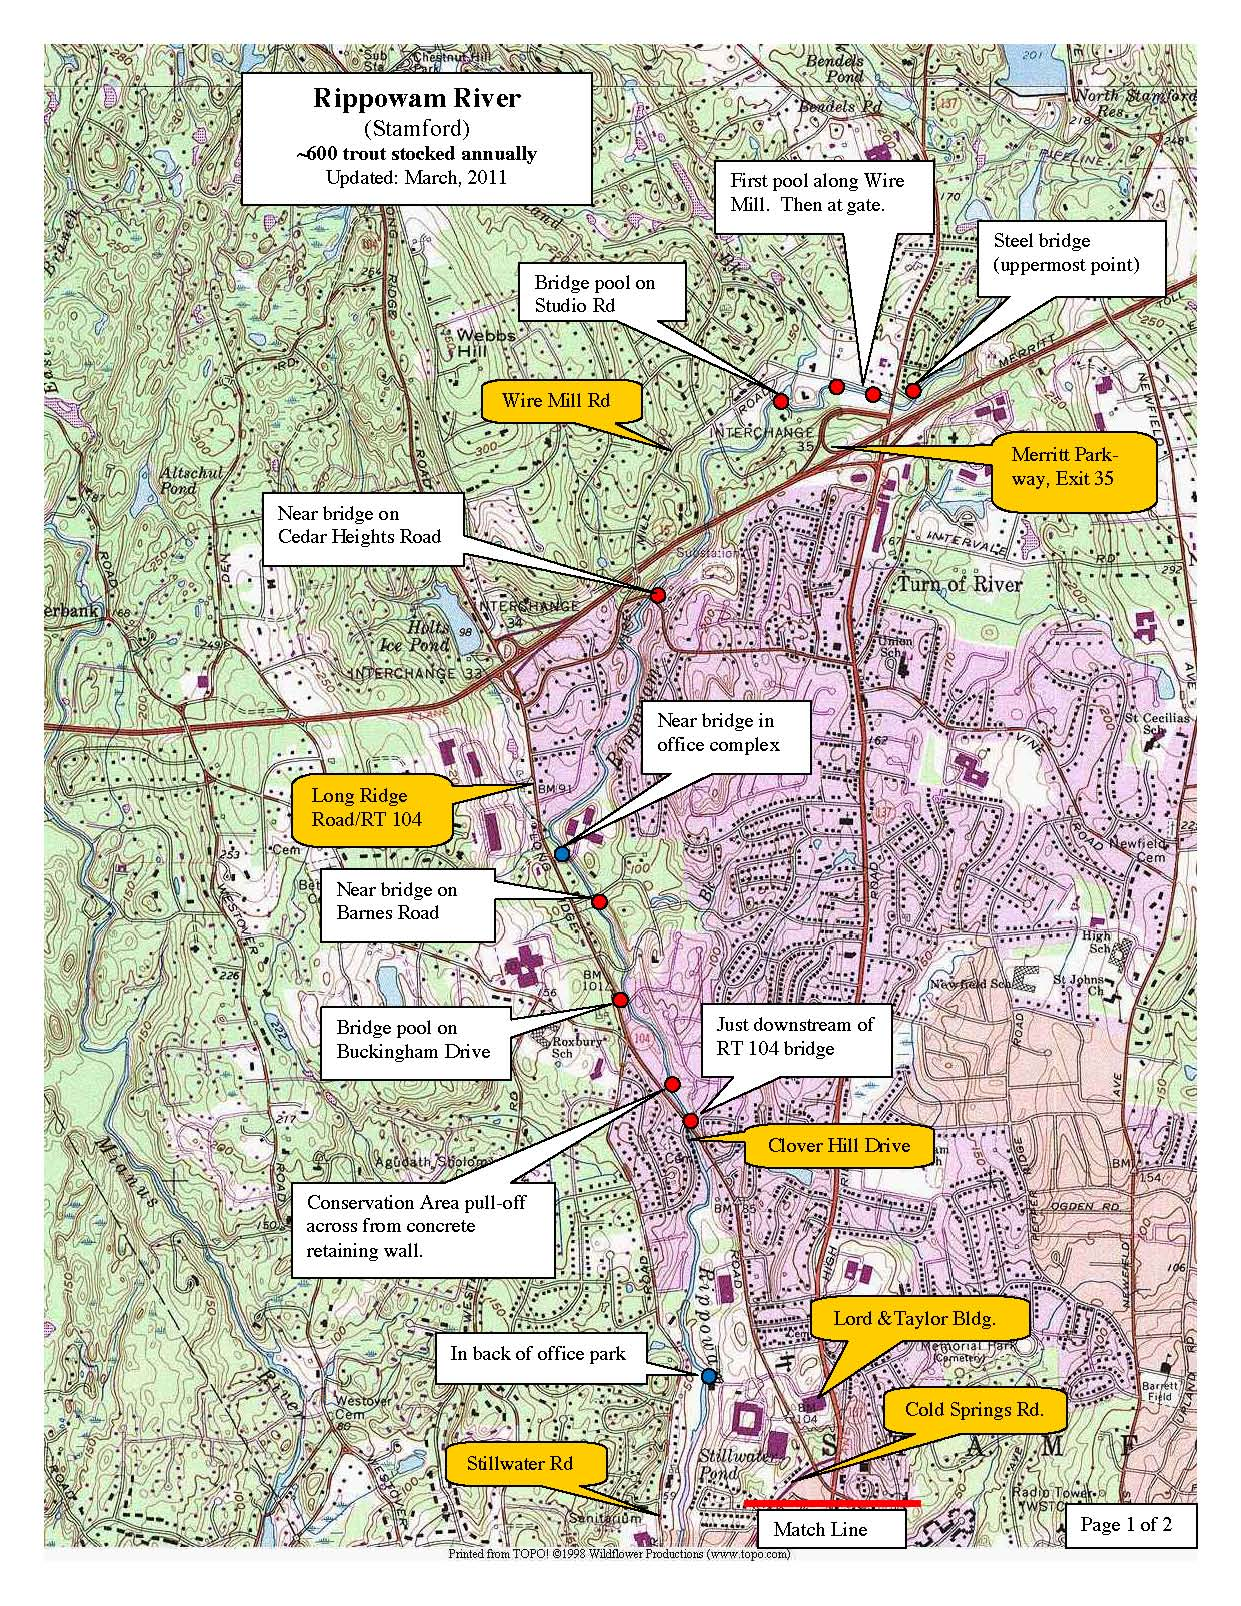 rippowam-river-stamford, trout-stocking-maps